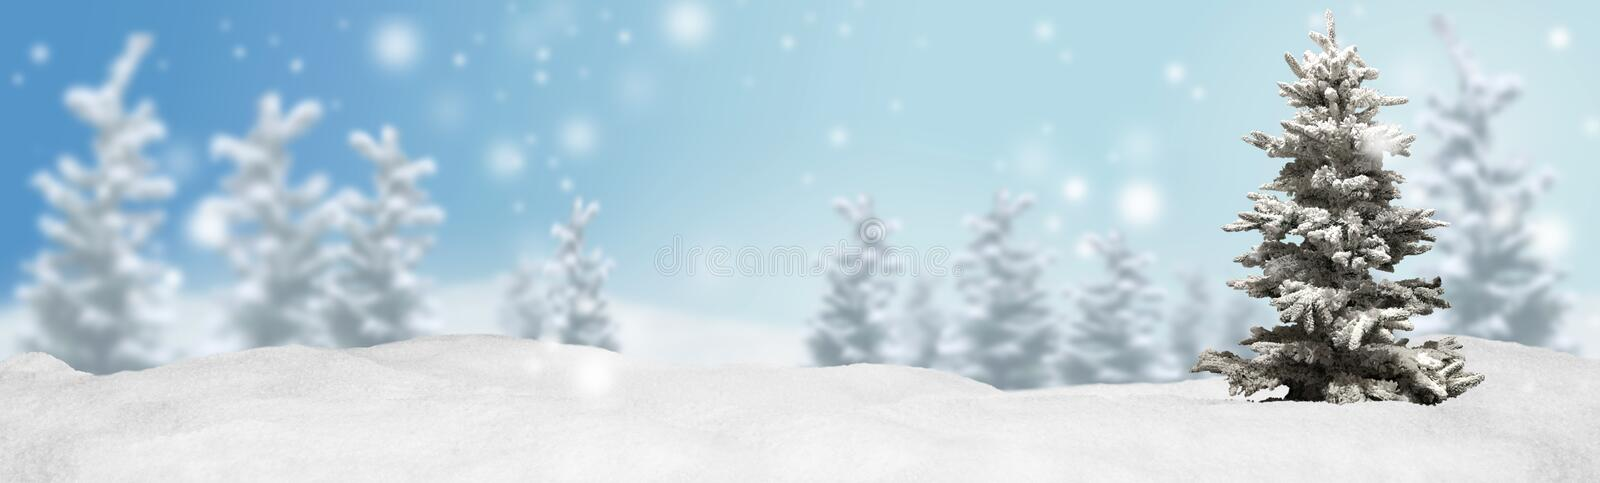 Christmas banner panorama background royalty free stock photography